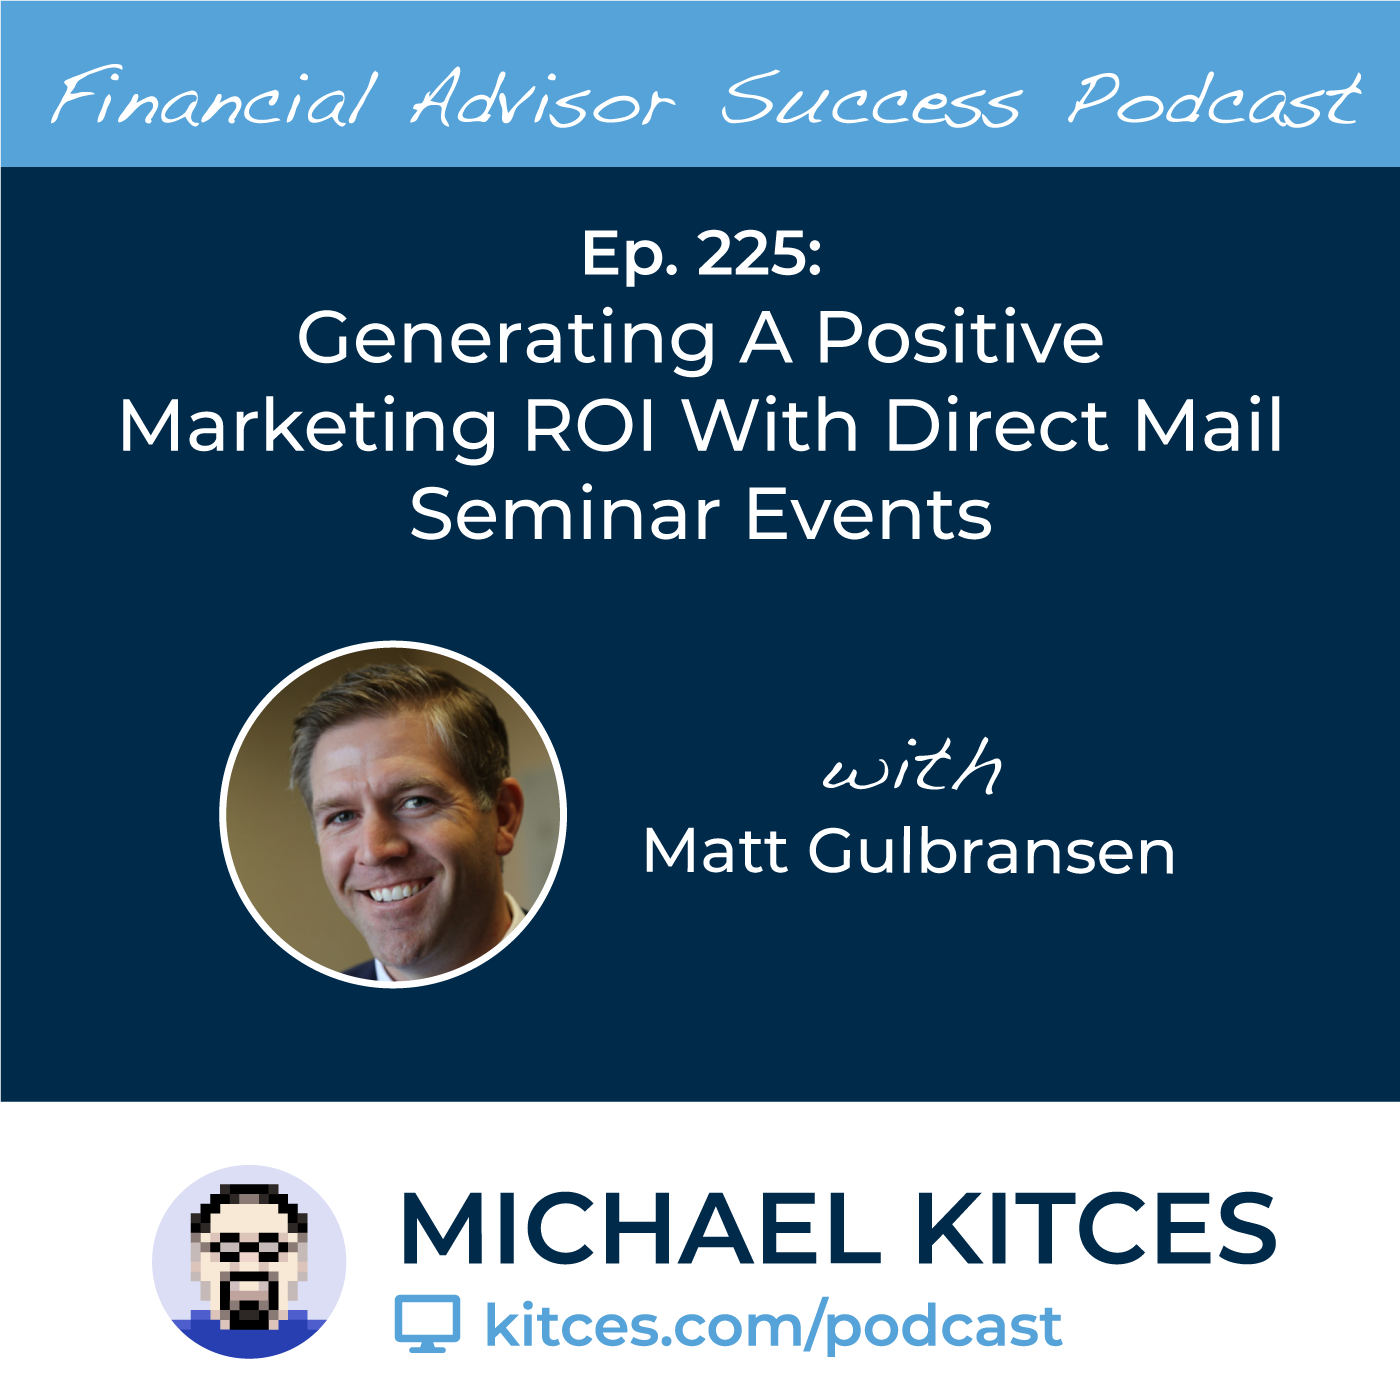 Ep 225: Generating A Positive Marketing ROI With Direct Mail Seminar Events with Matt Gulbransen